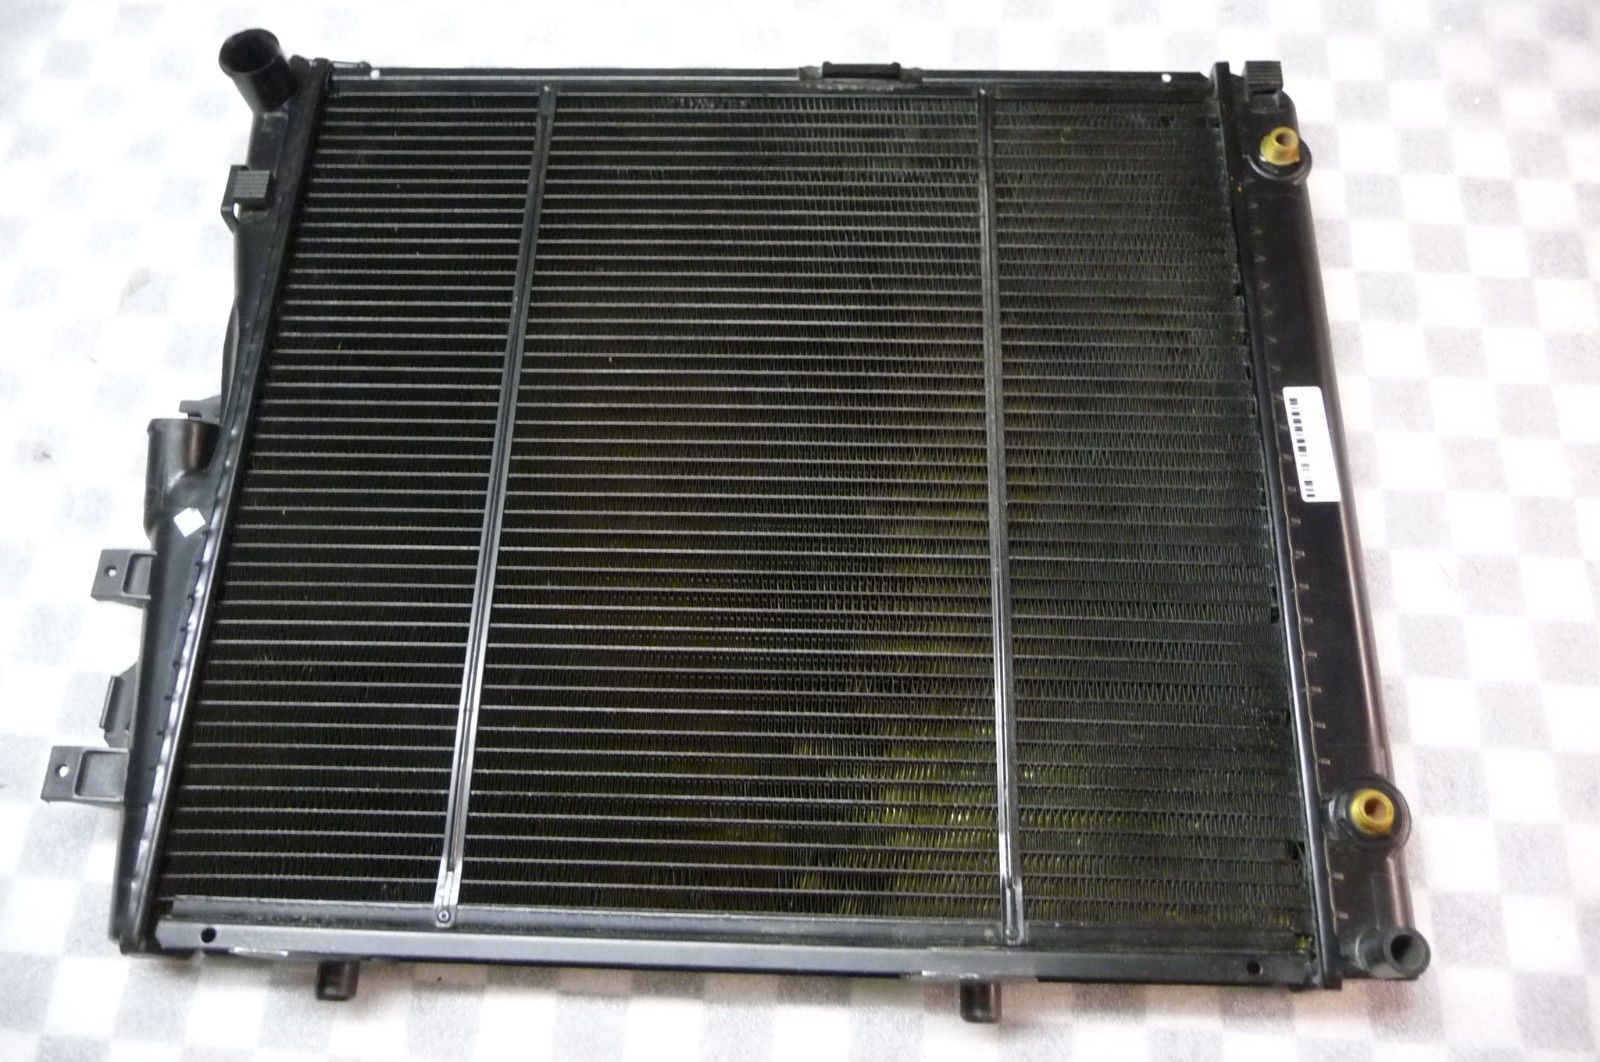 Mercedes Benz E Class E320 300E 300CE Radiator 1245009003, L-453-03/N/02 - Used Auto Parts Store | LA Global Parts